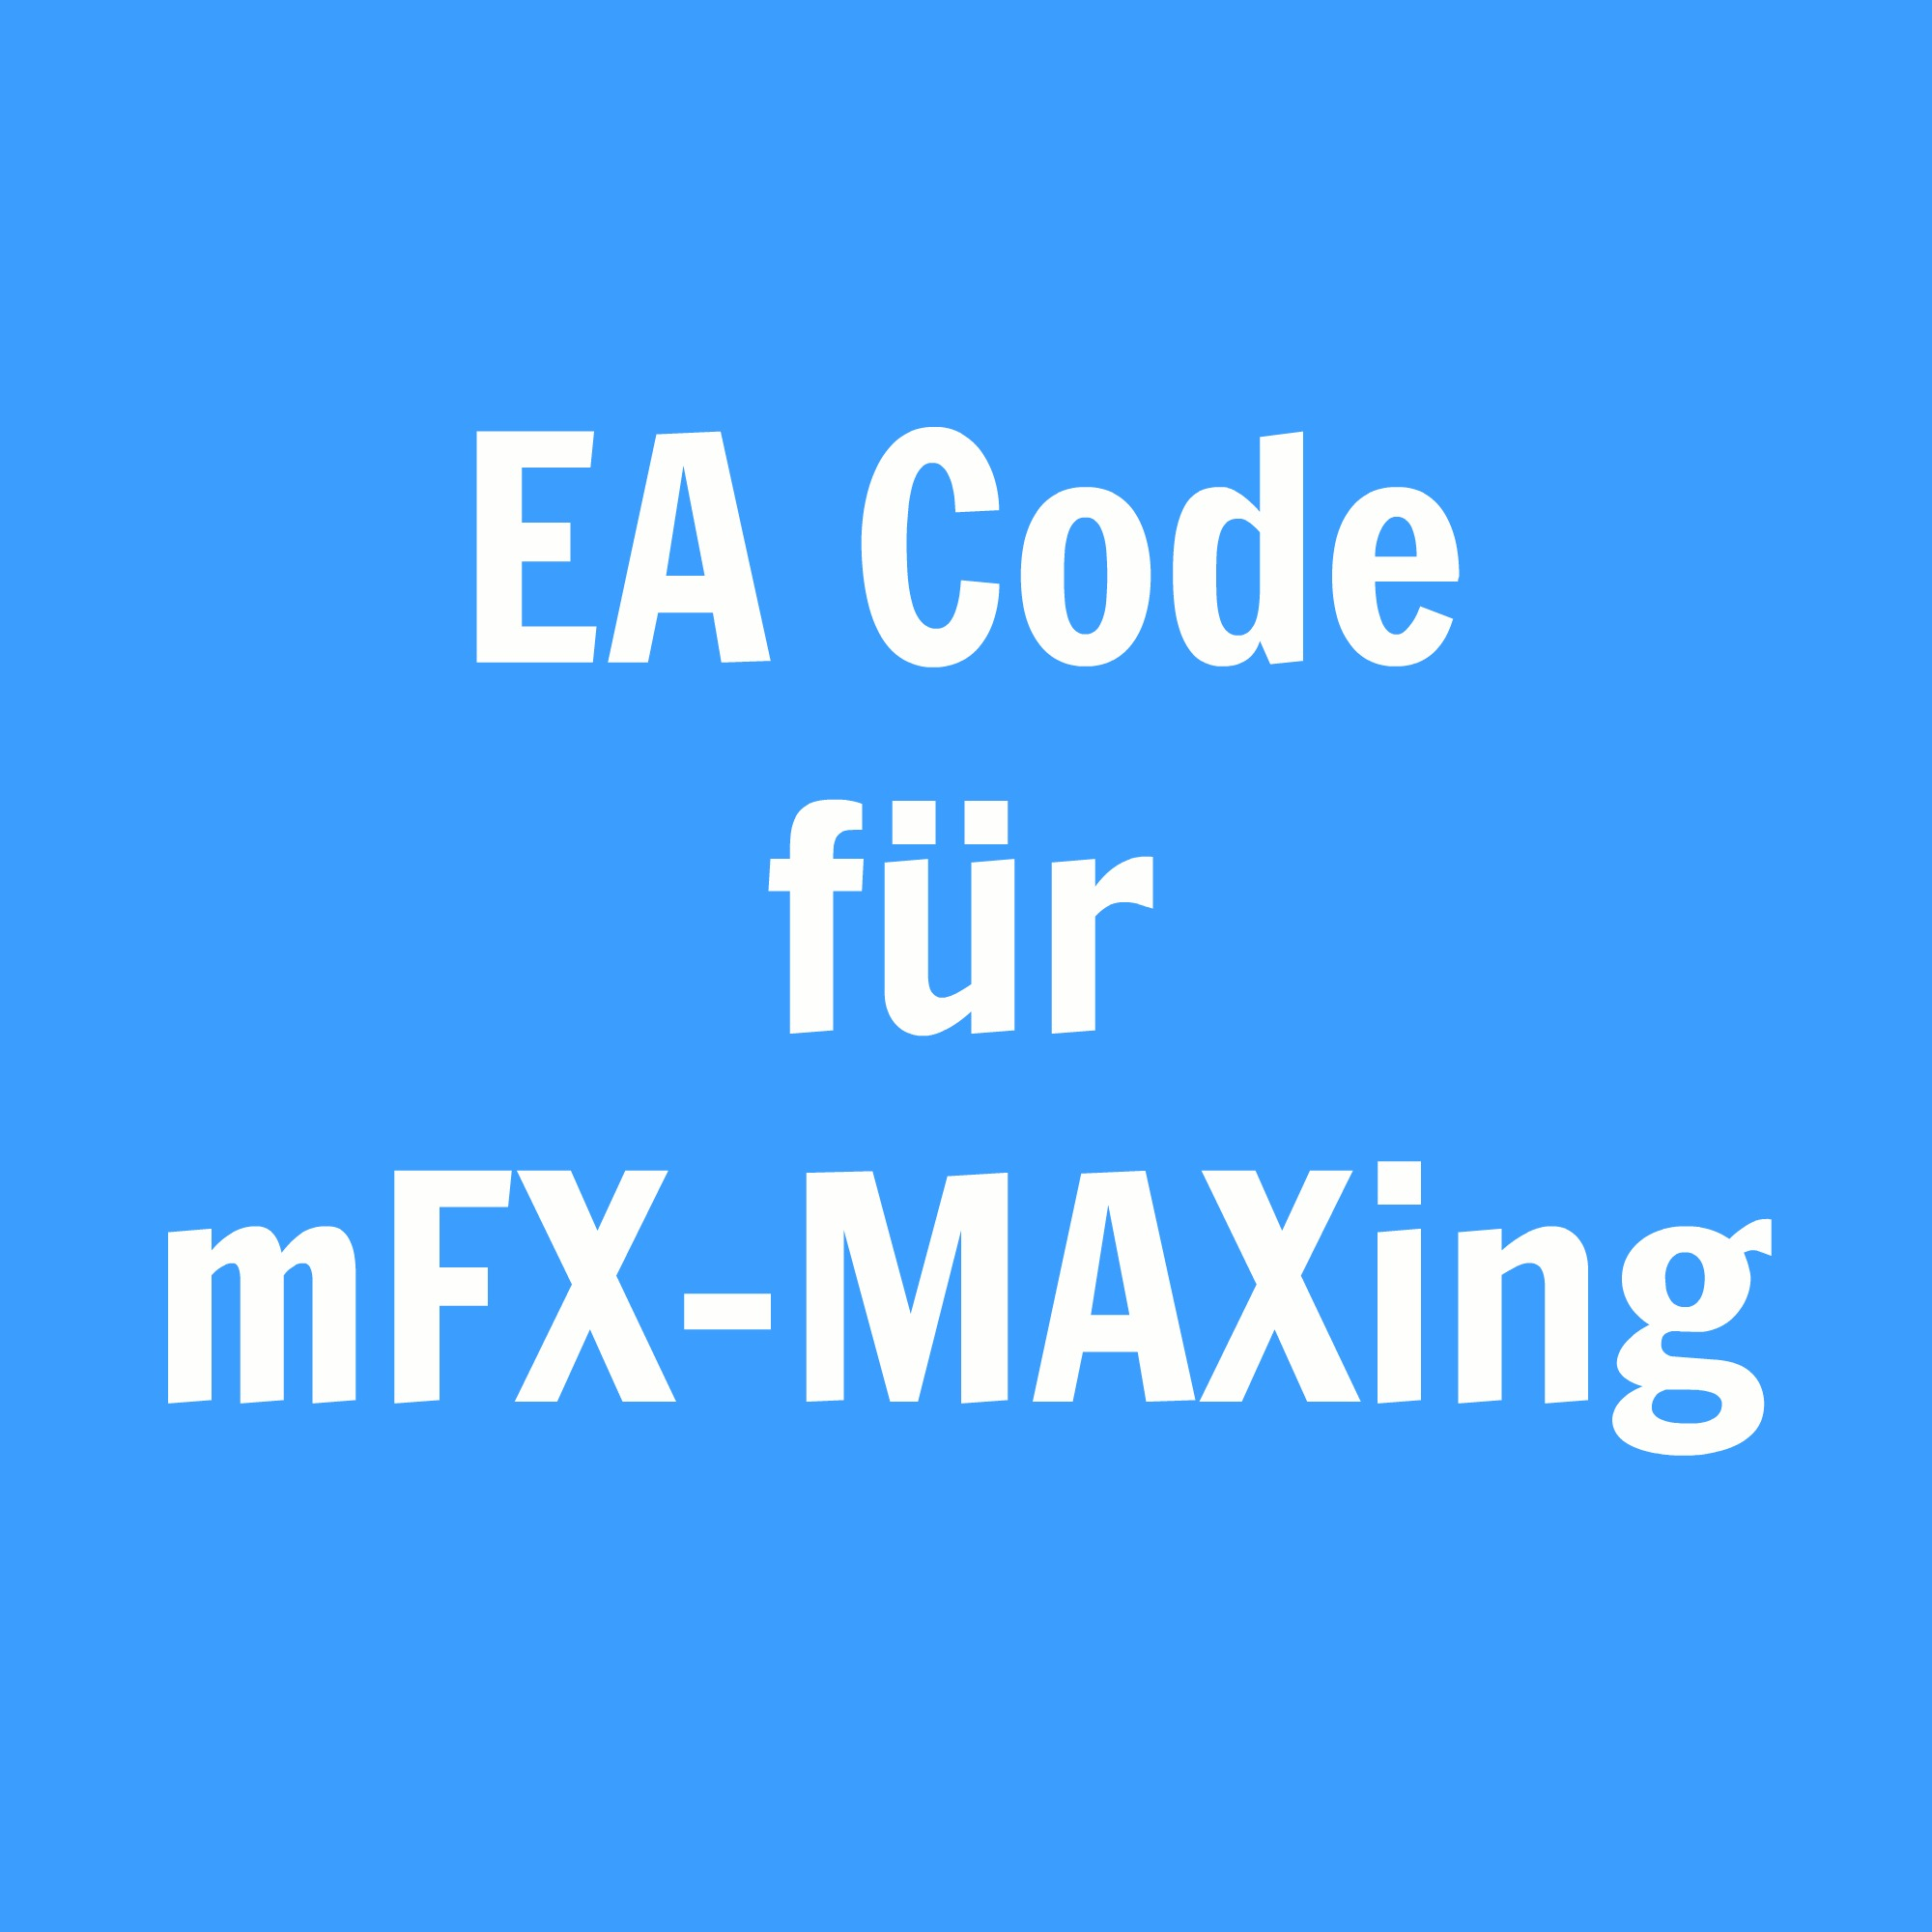 Expert_Advisor_Code_Download_mFX-MAXing